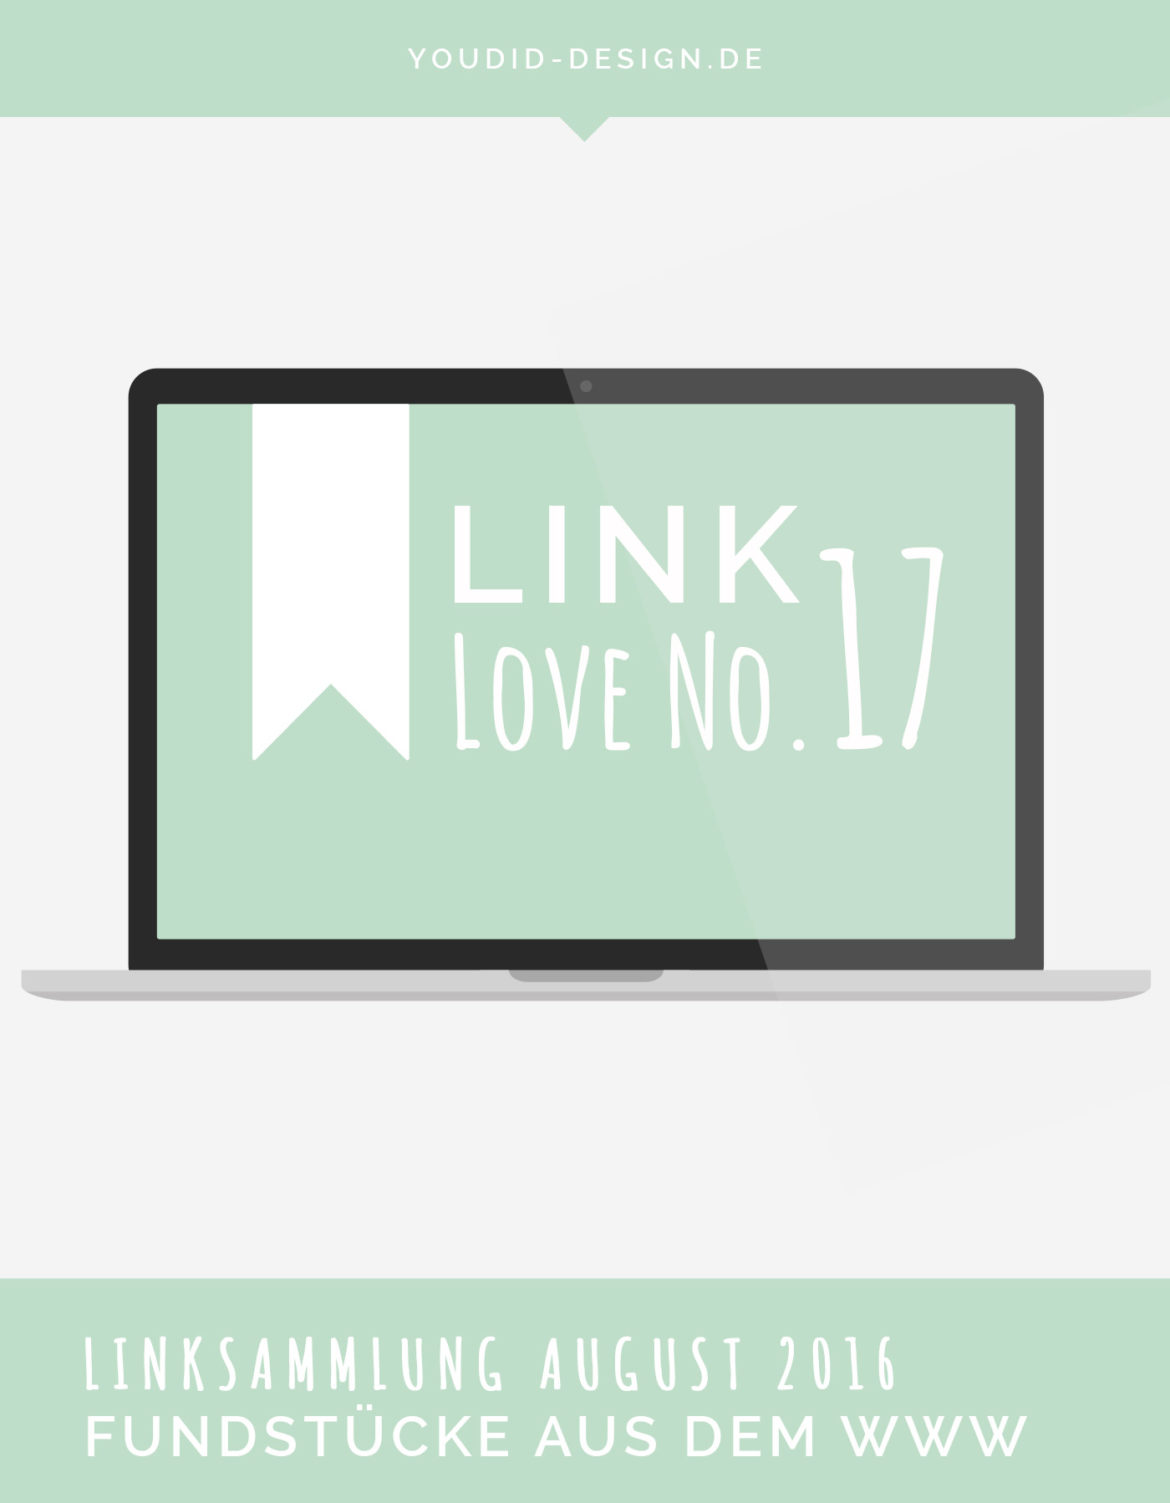 Linksammlung Linklove No 17 August 2016 | www.youdid-design.de